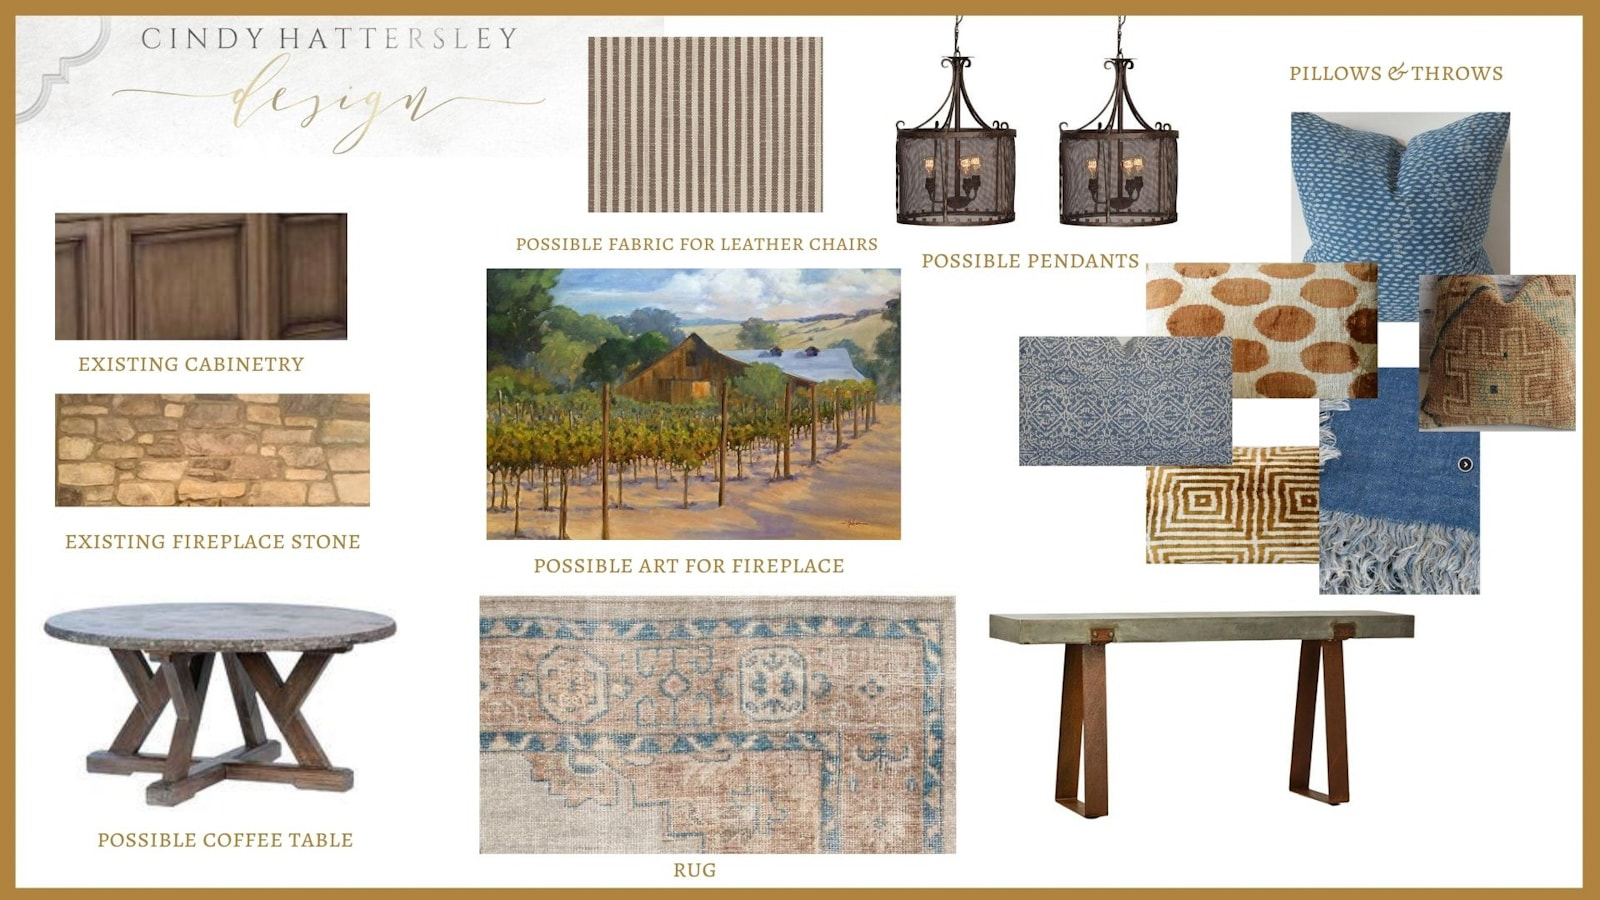 cindy hattersley design client moodboard